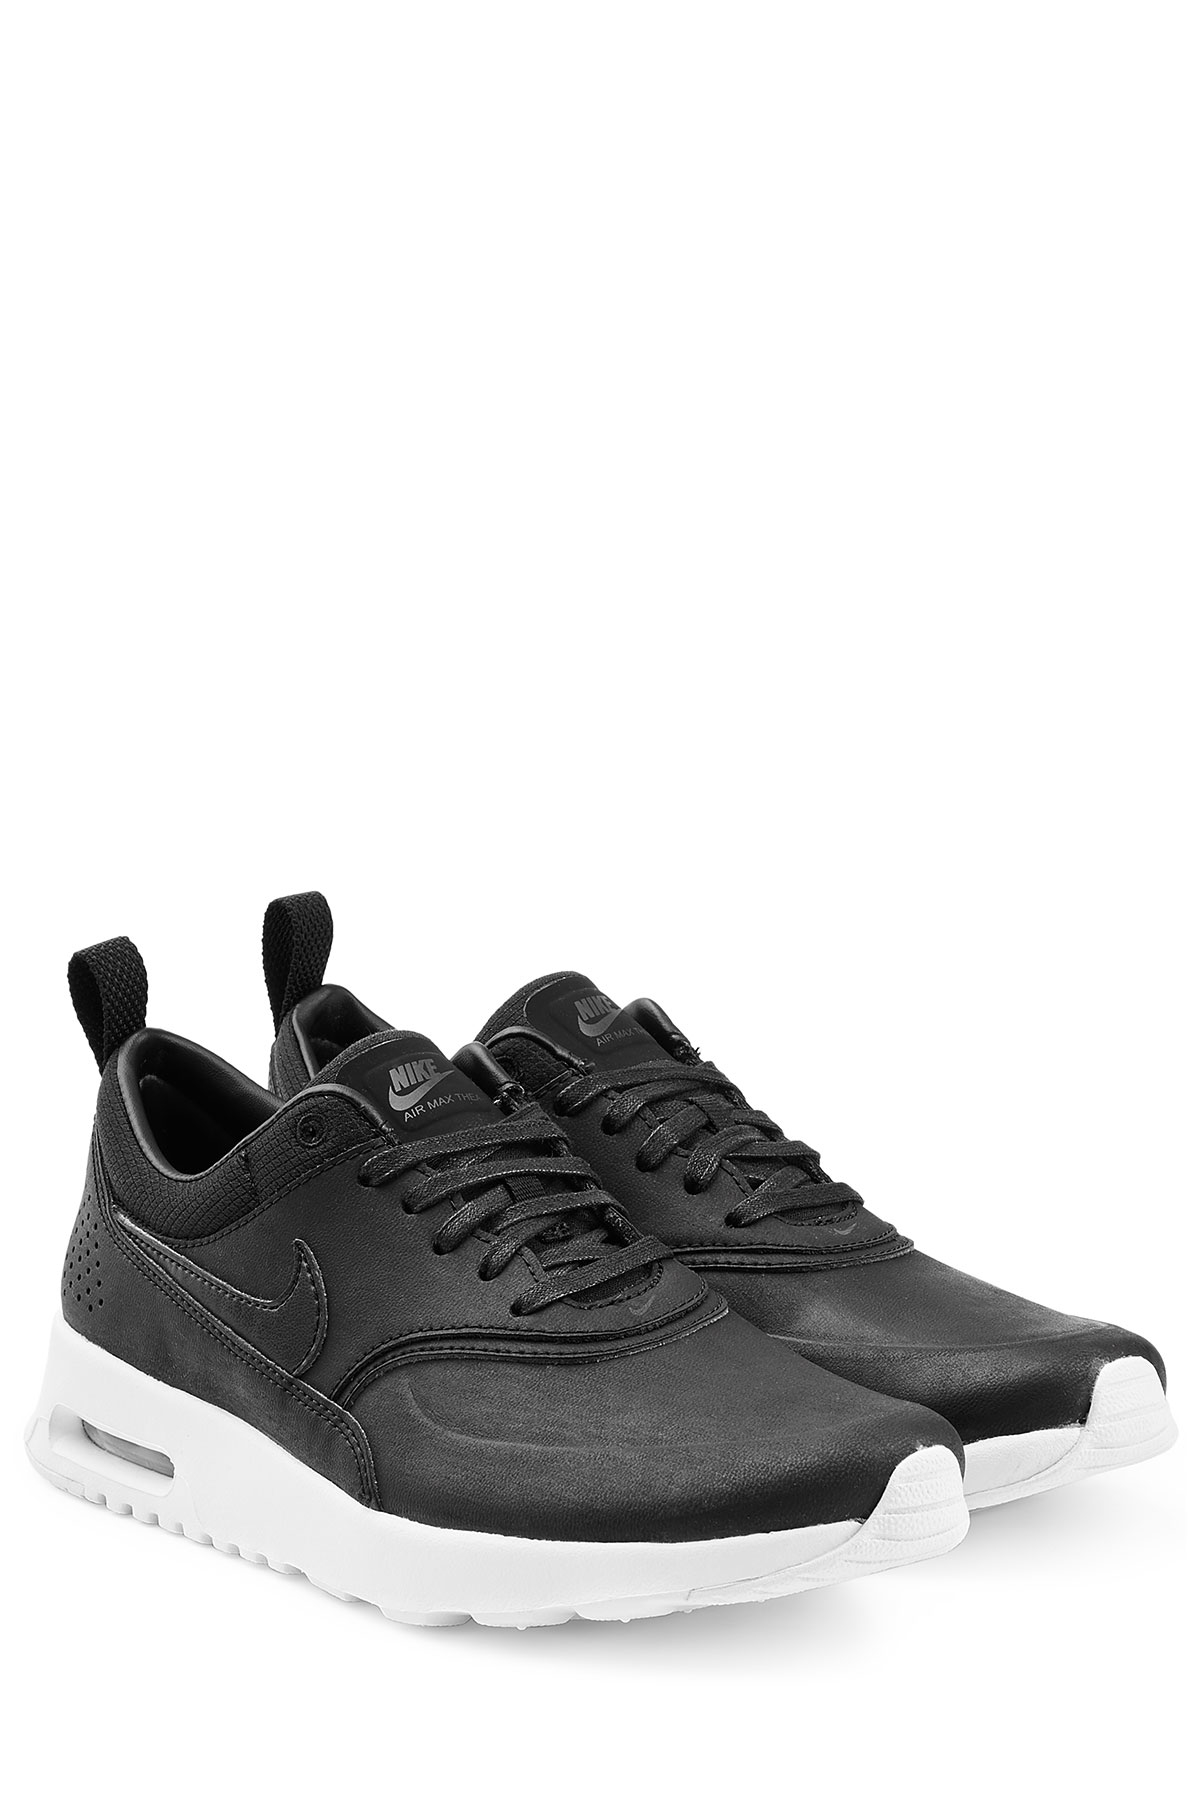 Nike Air Max Thea Premium Leather Sneakers Black In